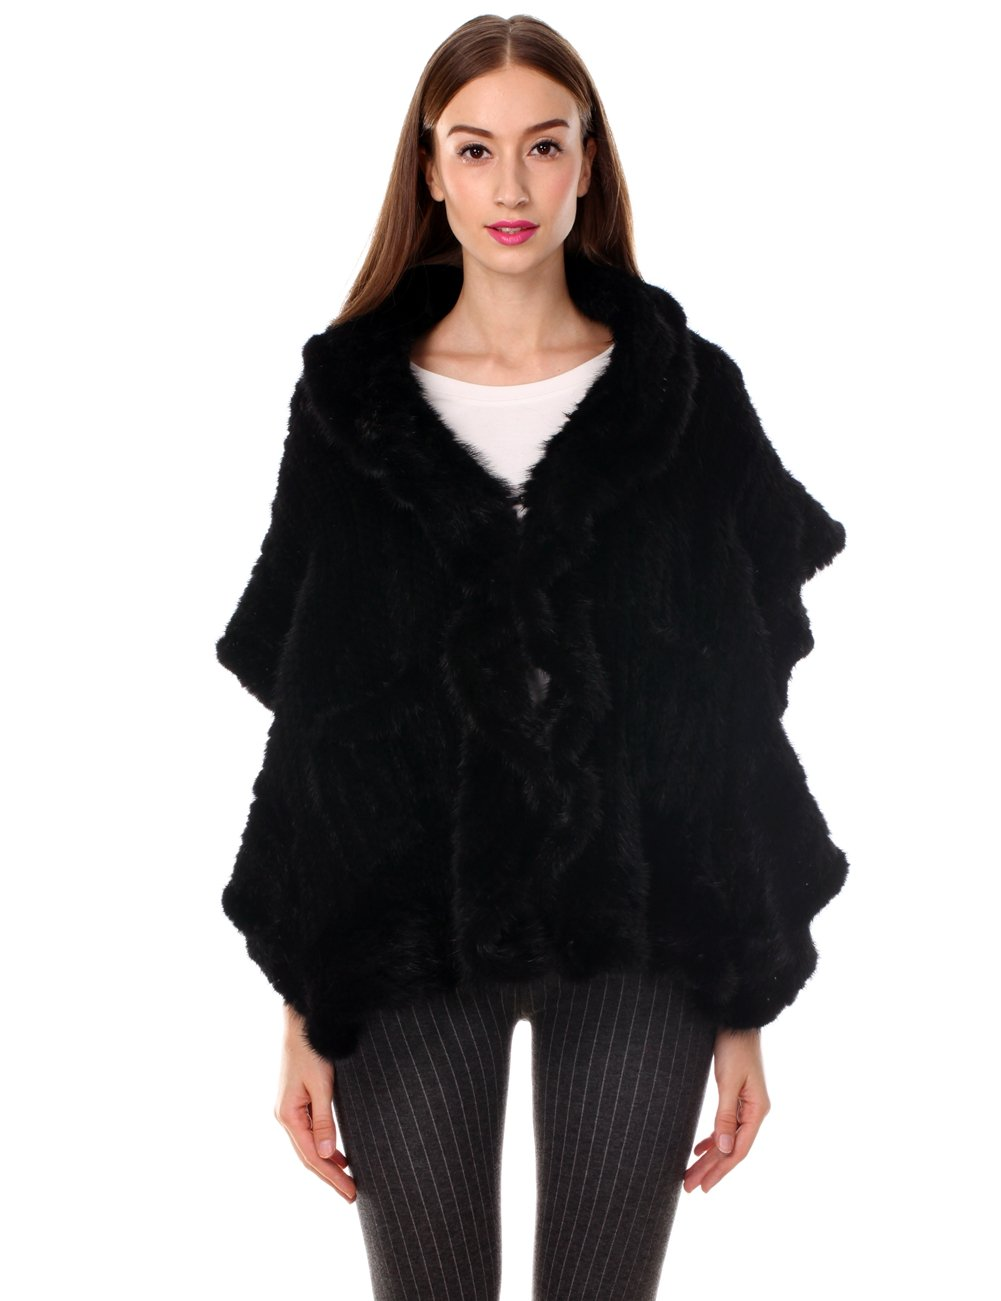 Ferand Knitted Real Mink Fur Ruffled Shawl Stole with 2 Pockets for Women, Black